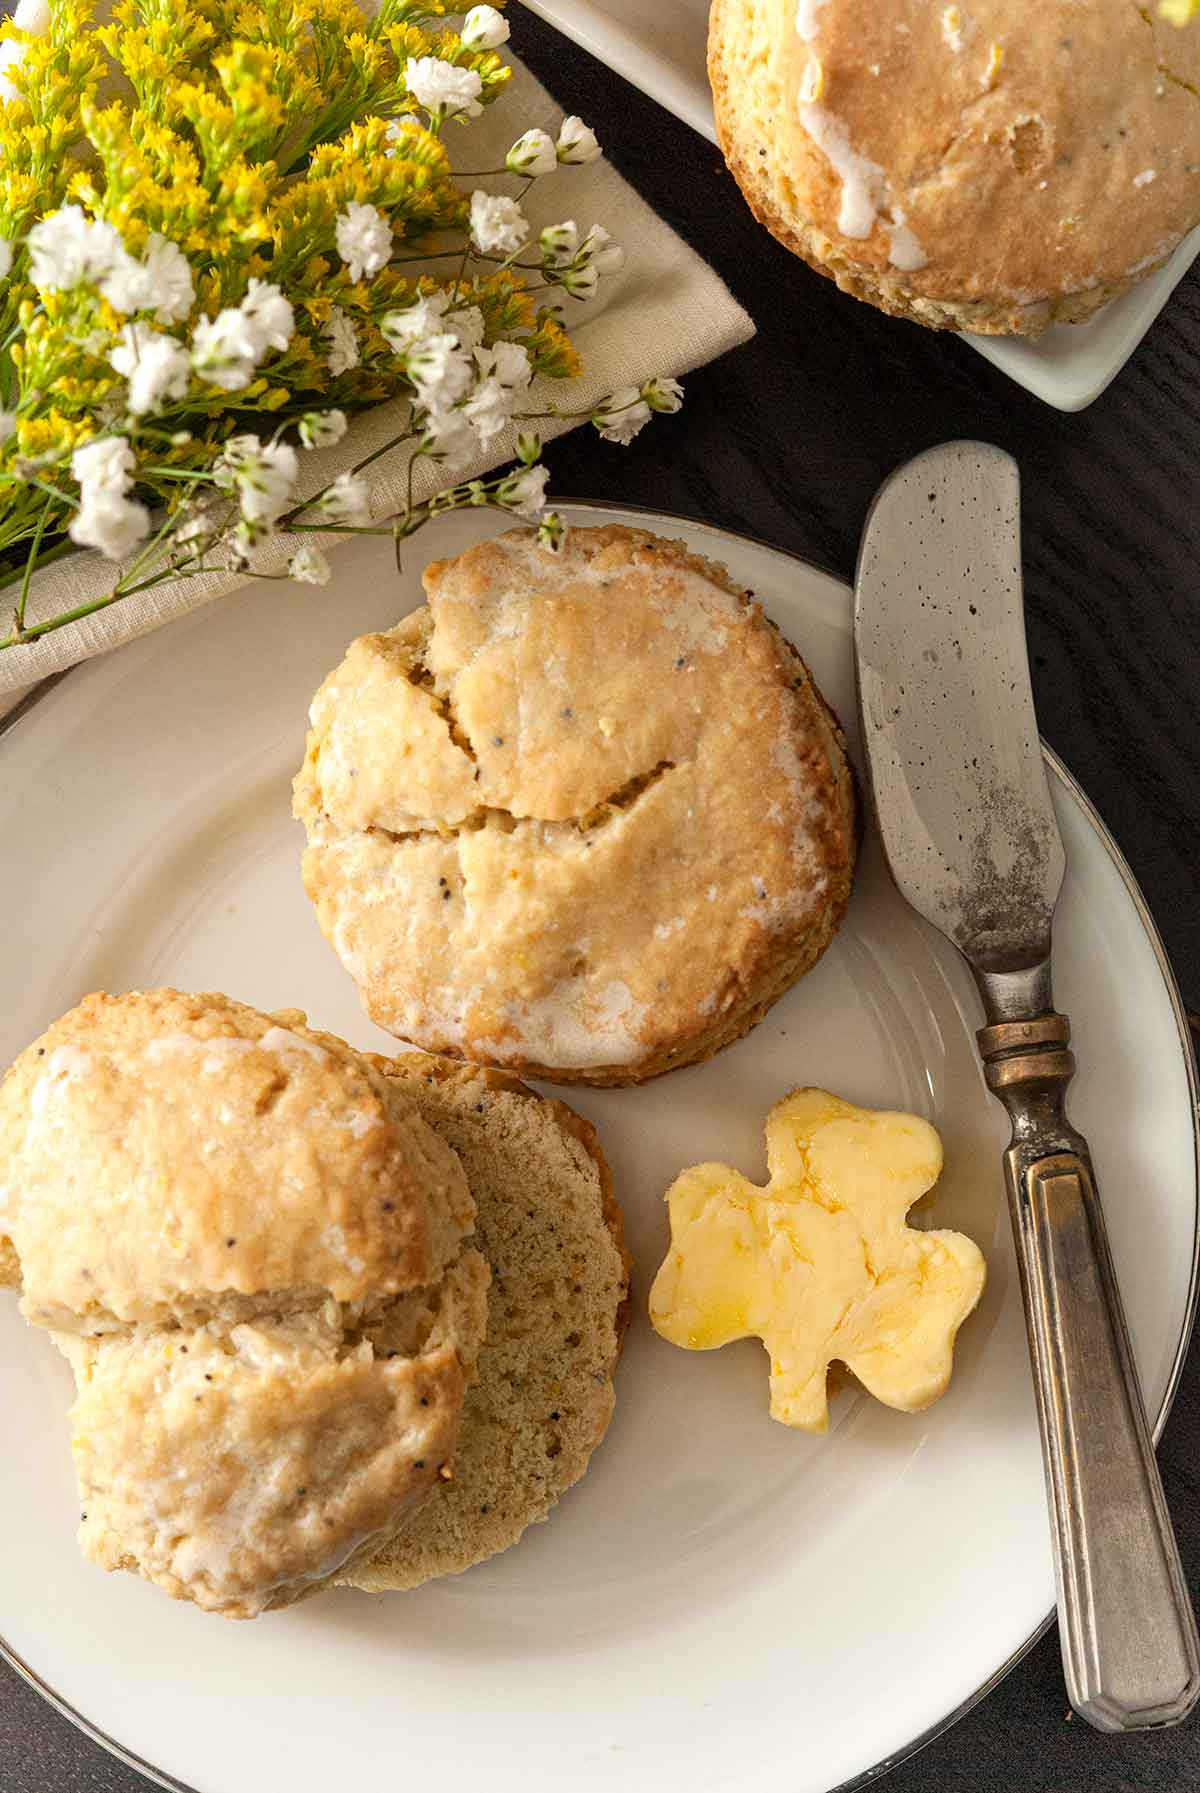 2 scones on a plate with a shamrock-shaped pad of butter, beside a knife, in front of a few flowers o a table.